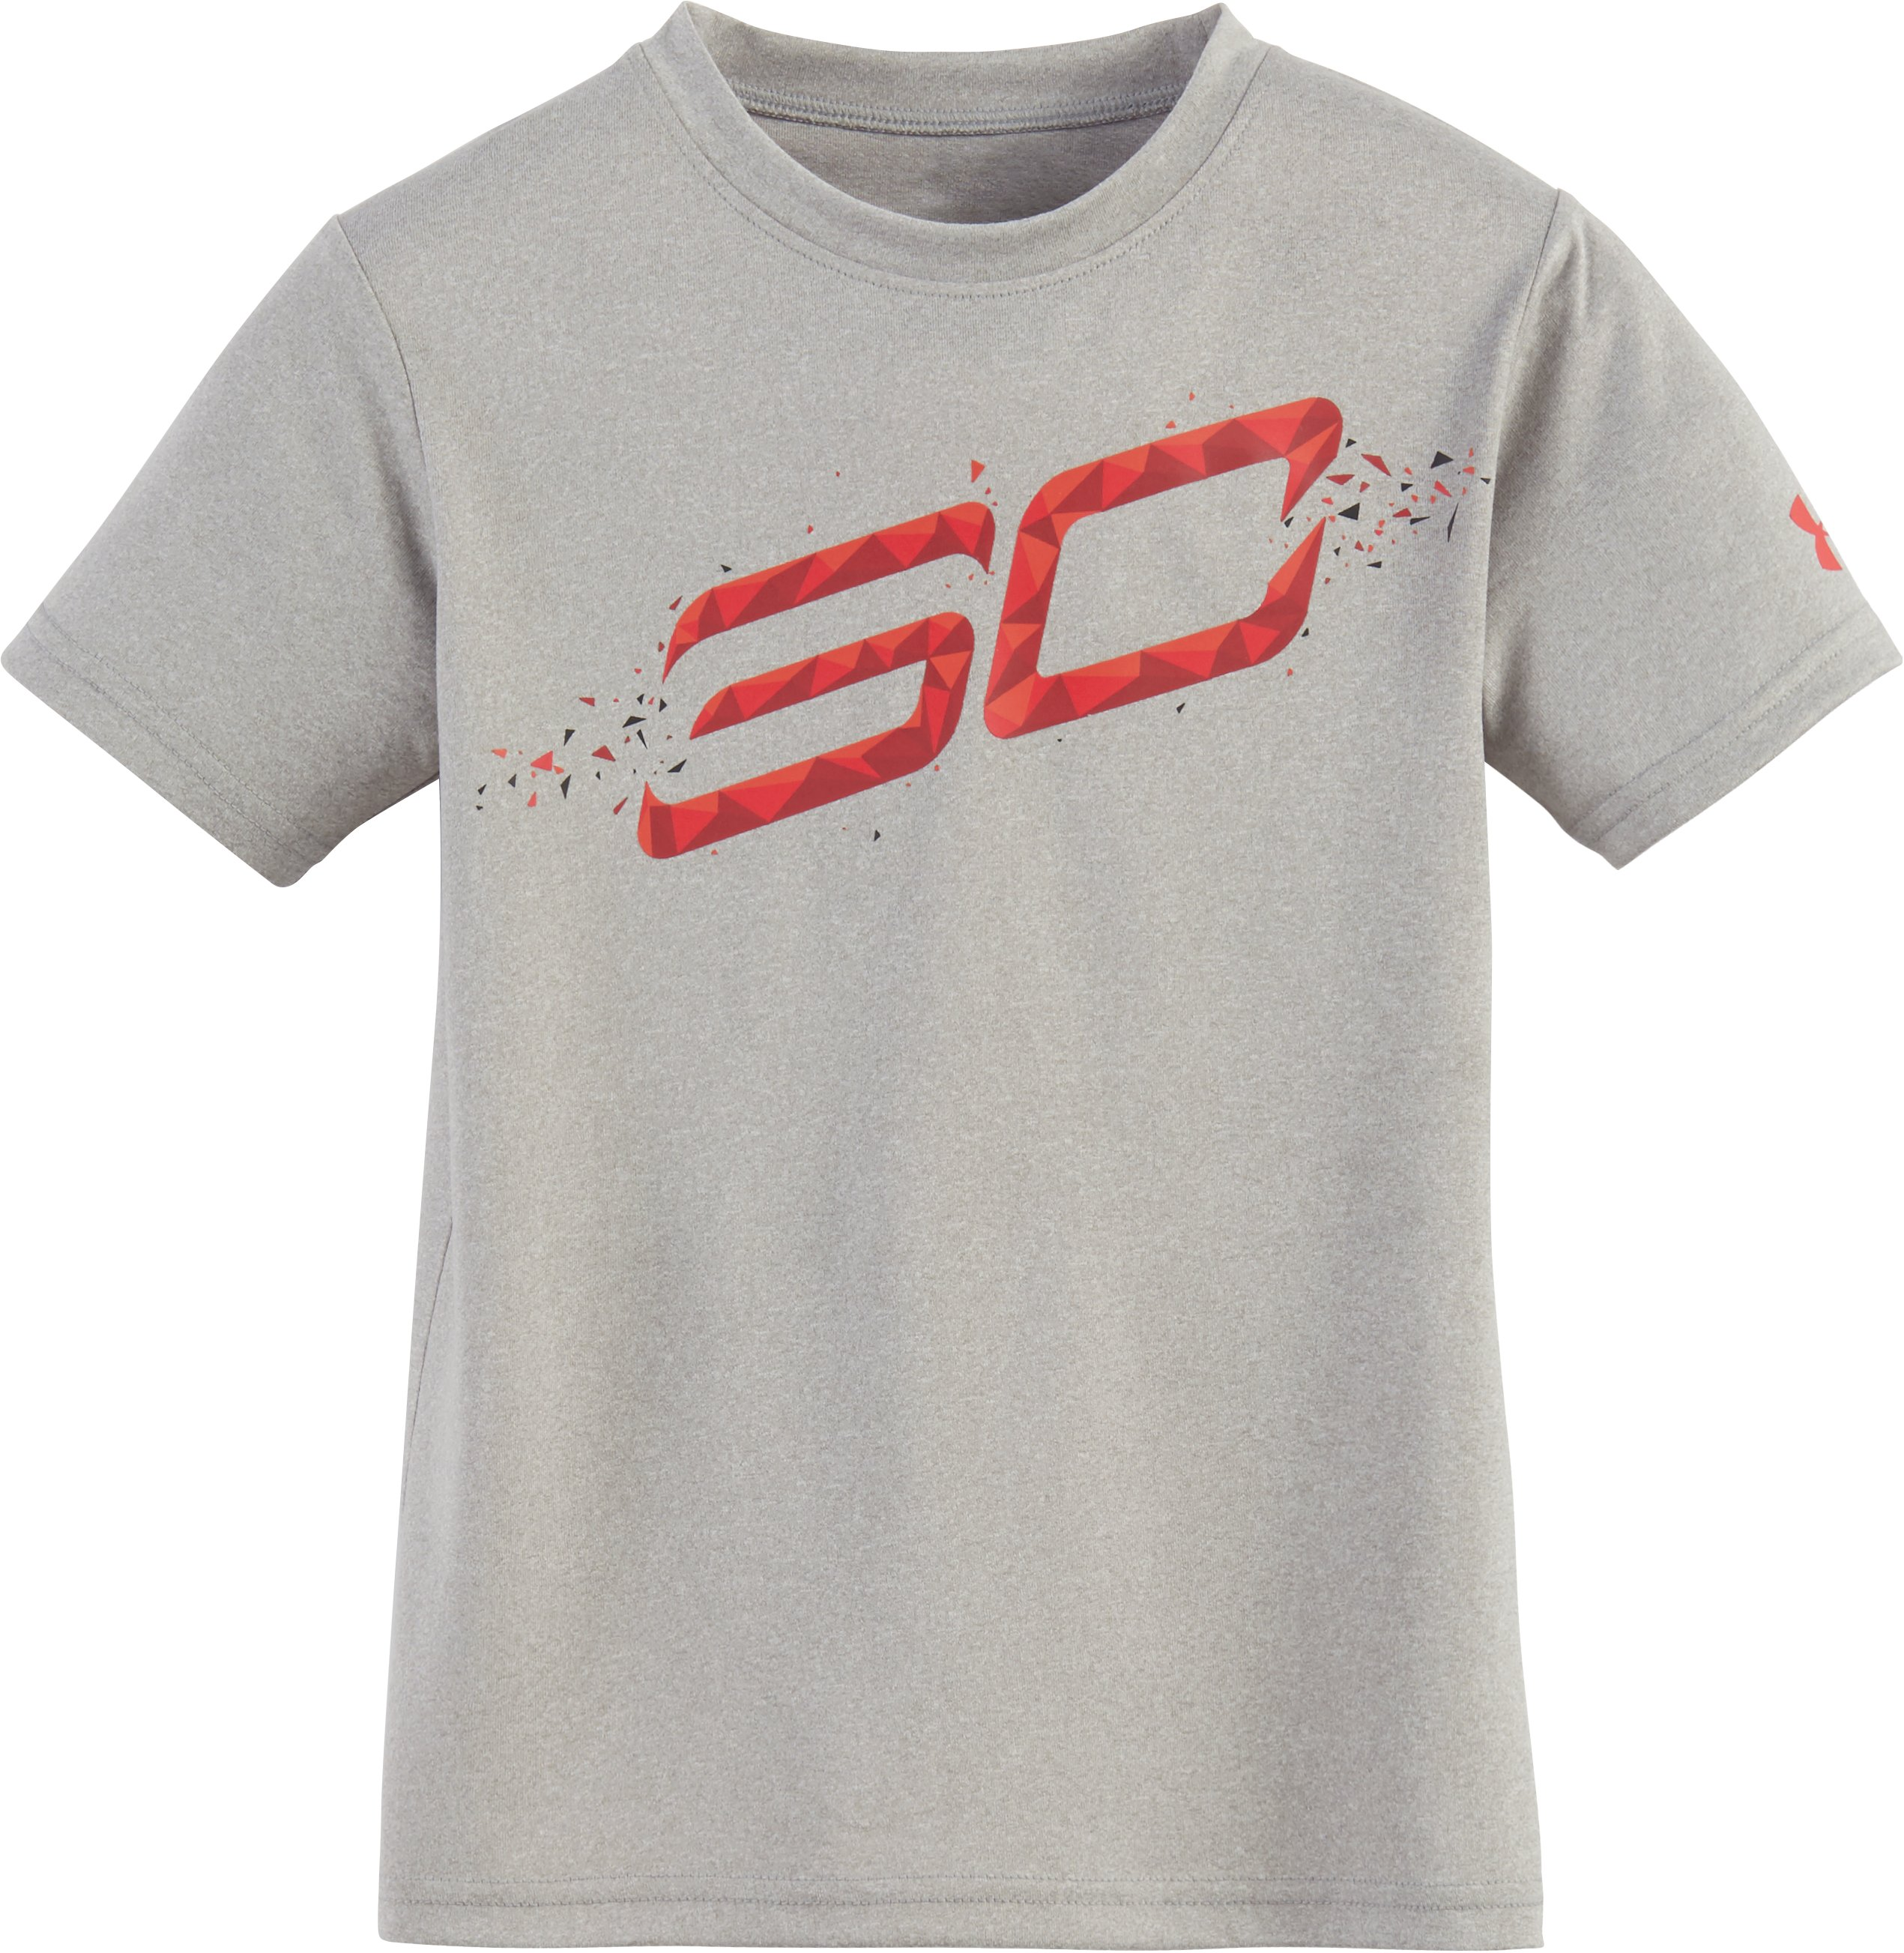 Boys' Pre-School SC30 Player Short Sleeve Shirt, True Gray Heather